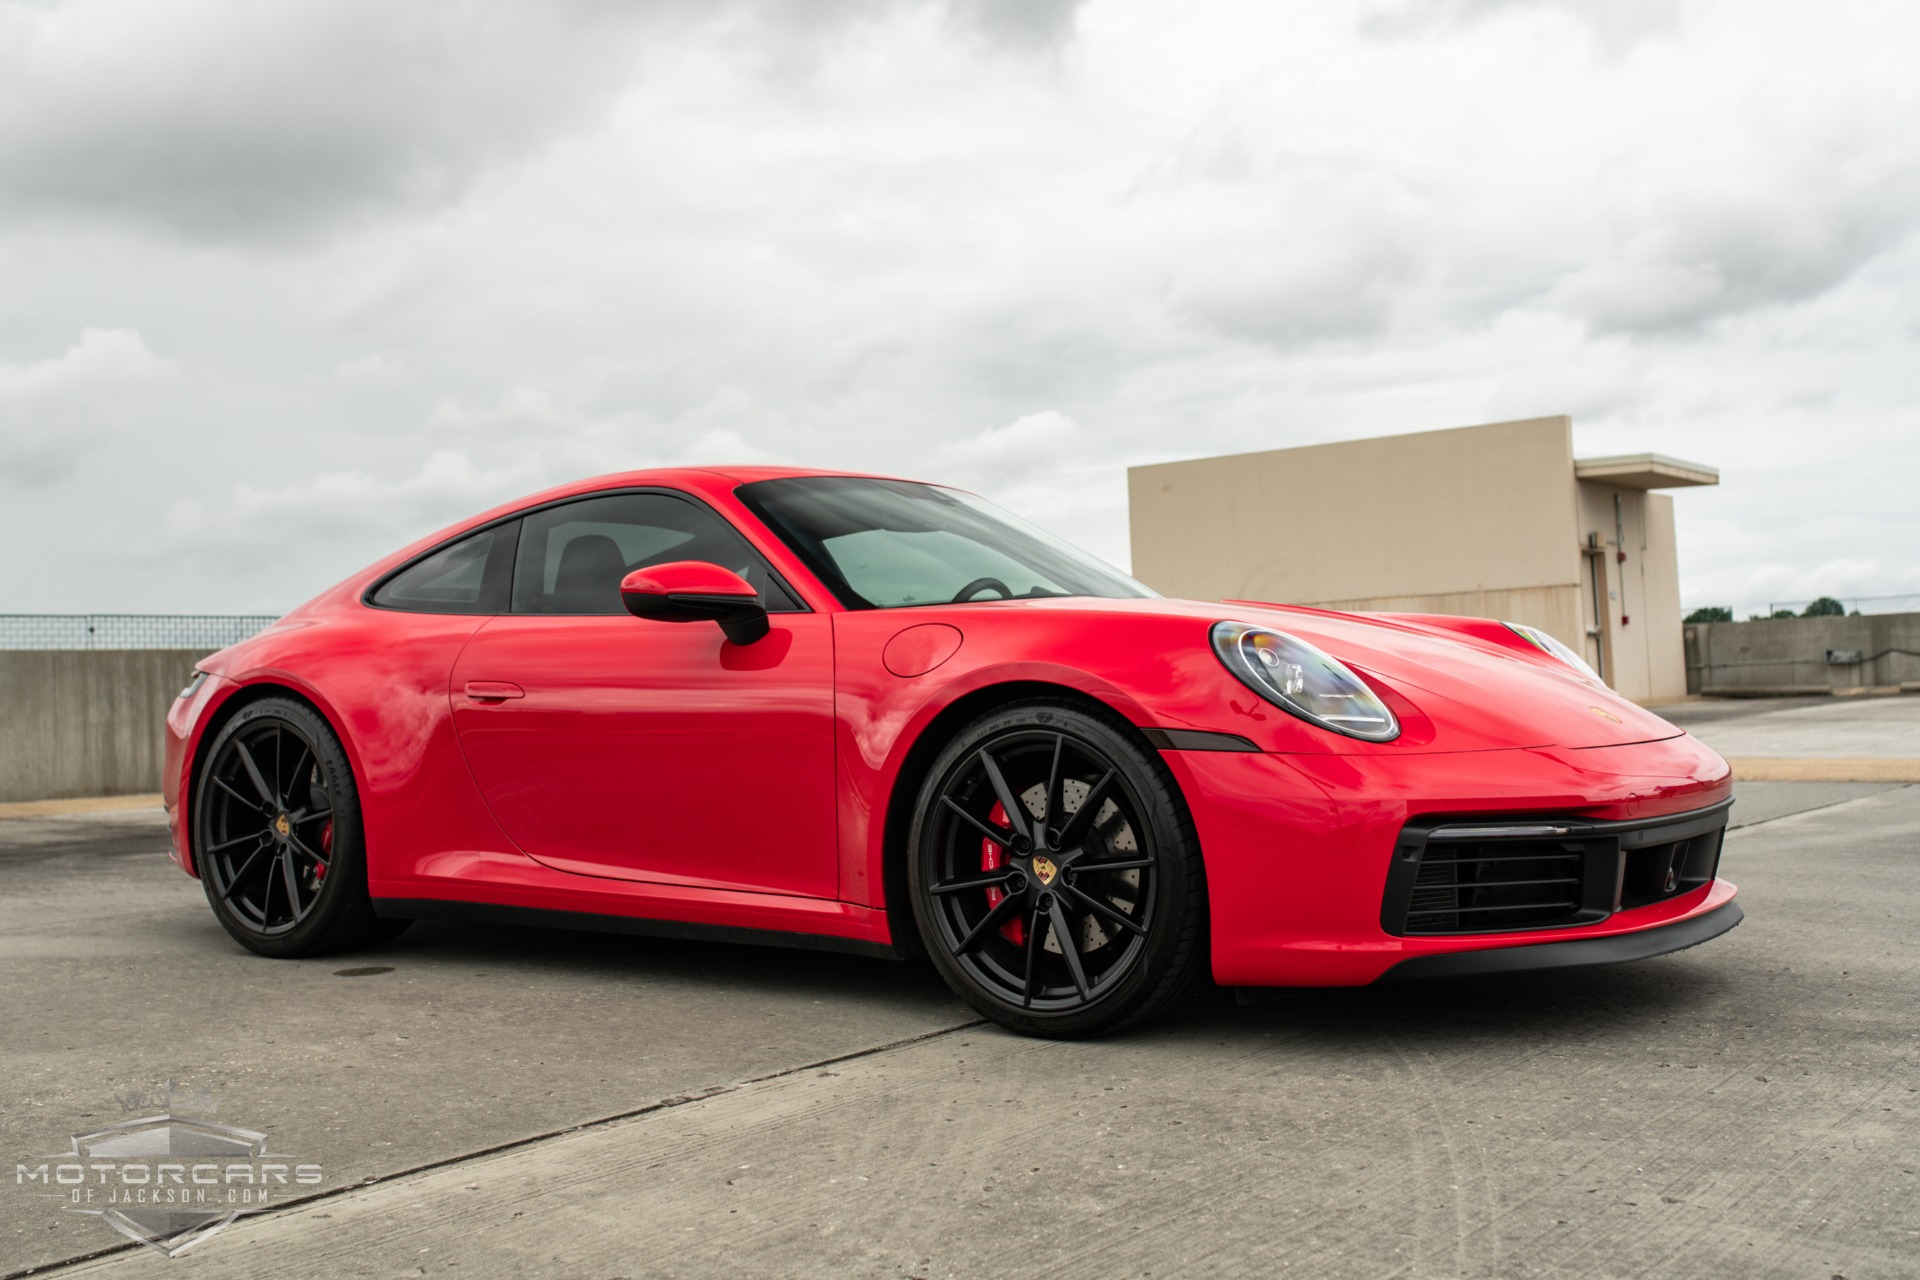 Used-2020-Porsche-911-Carrera-4S-(992)-for-sale-Jackson-MS